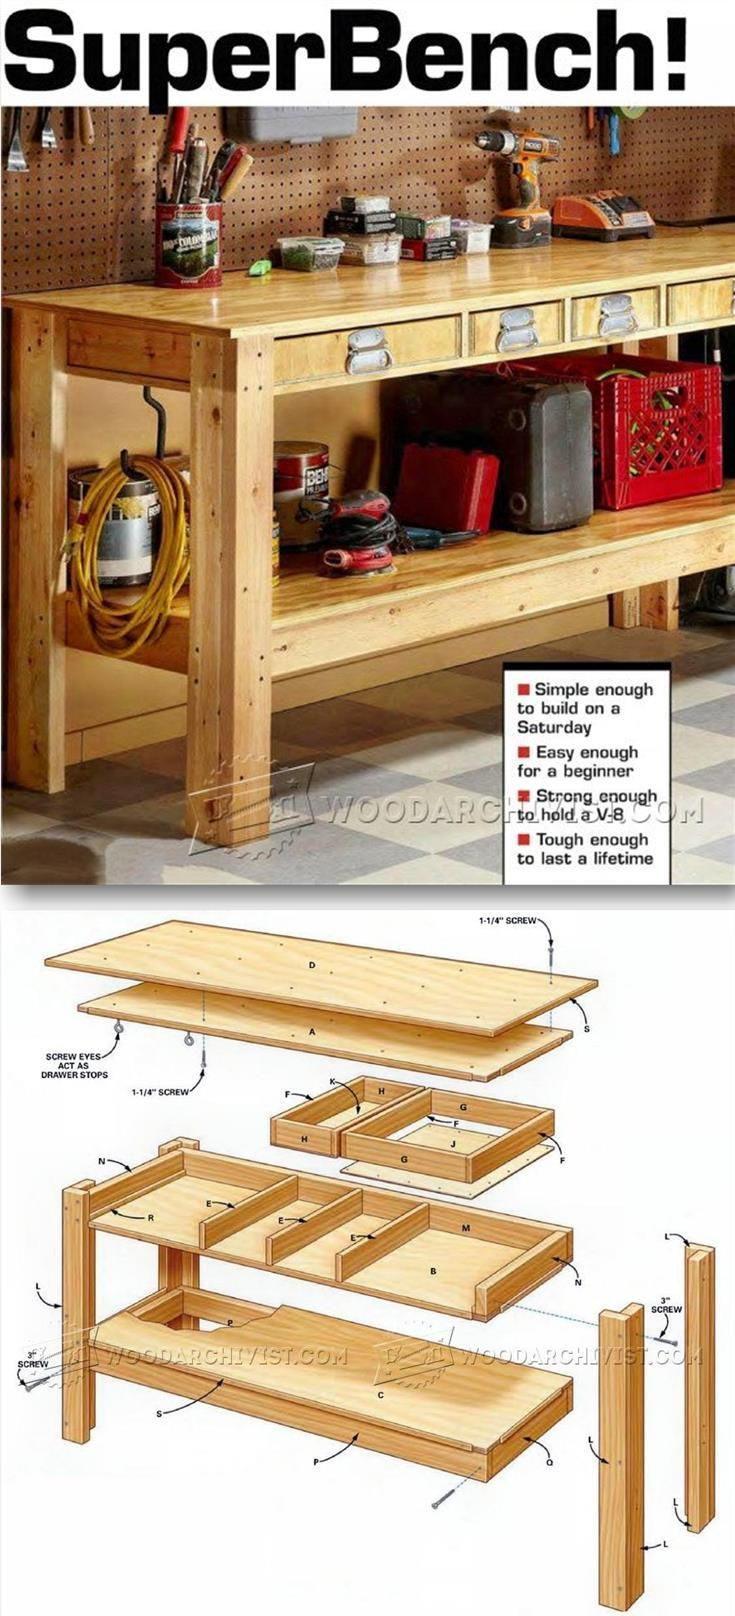 diy garage workbench ideas - 25 best ideas about Workbench plans on Pinterest